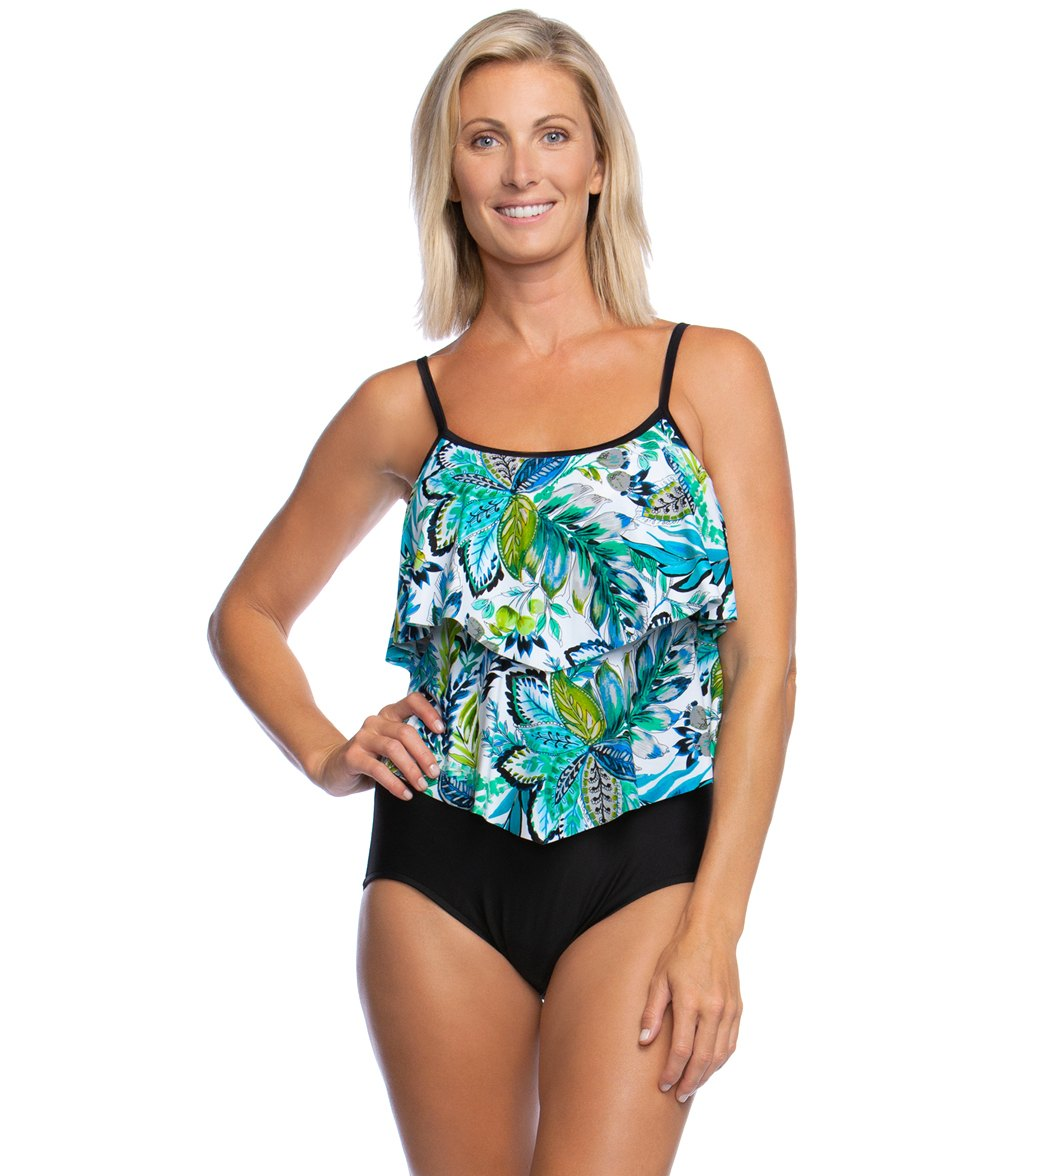 16eaa78f7d Maxine Nola Double Tiered One Piece Swimsuit at SwimOutlet.com - Free  Shipping